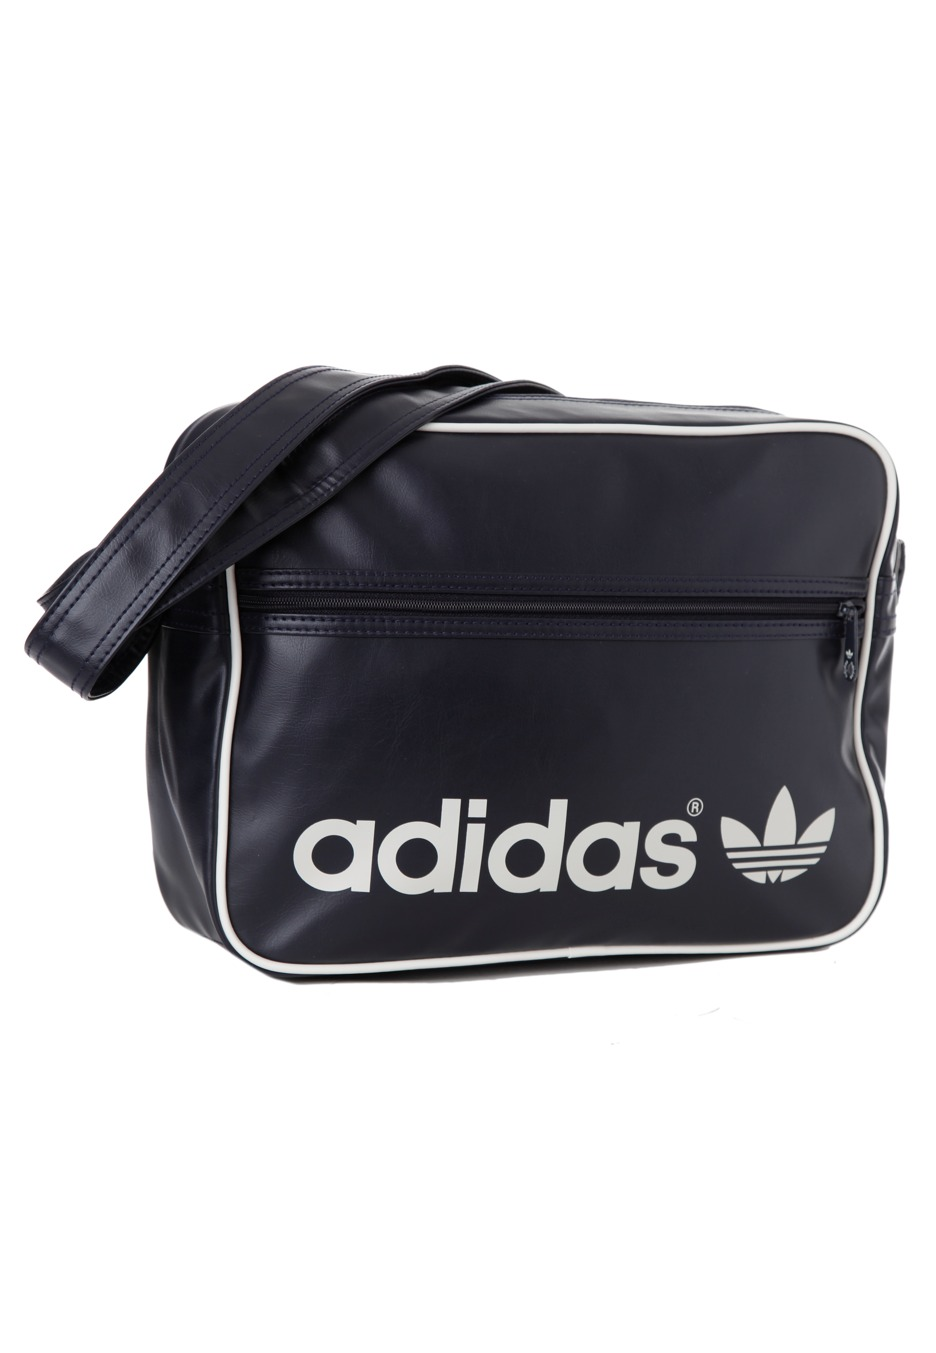 f7bed6472690 Adidas - Adicolor Airliner Legend Ink Running White - Bag - Streetwear Shop  - Impericon.com US